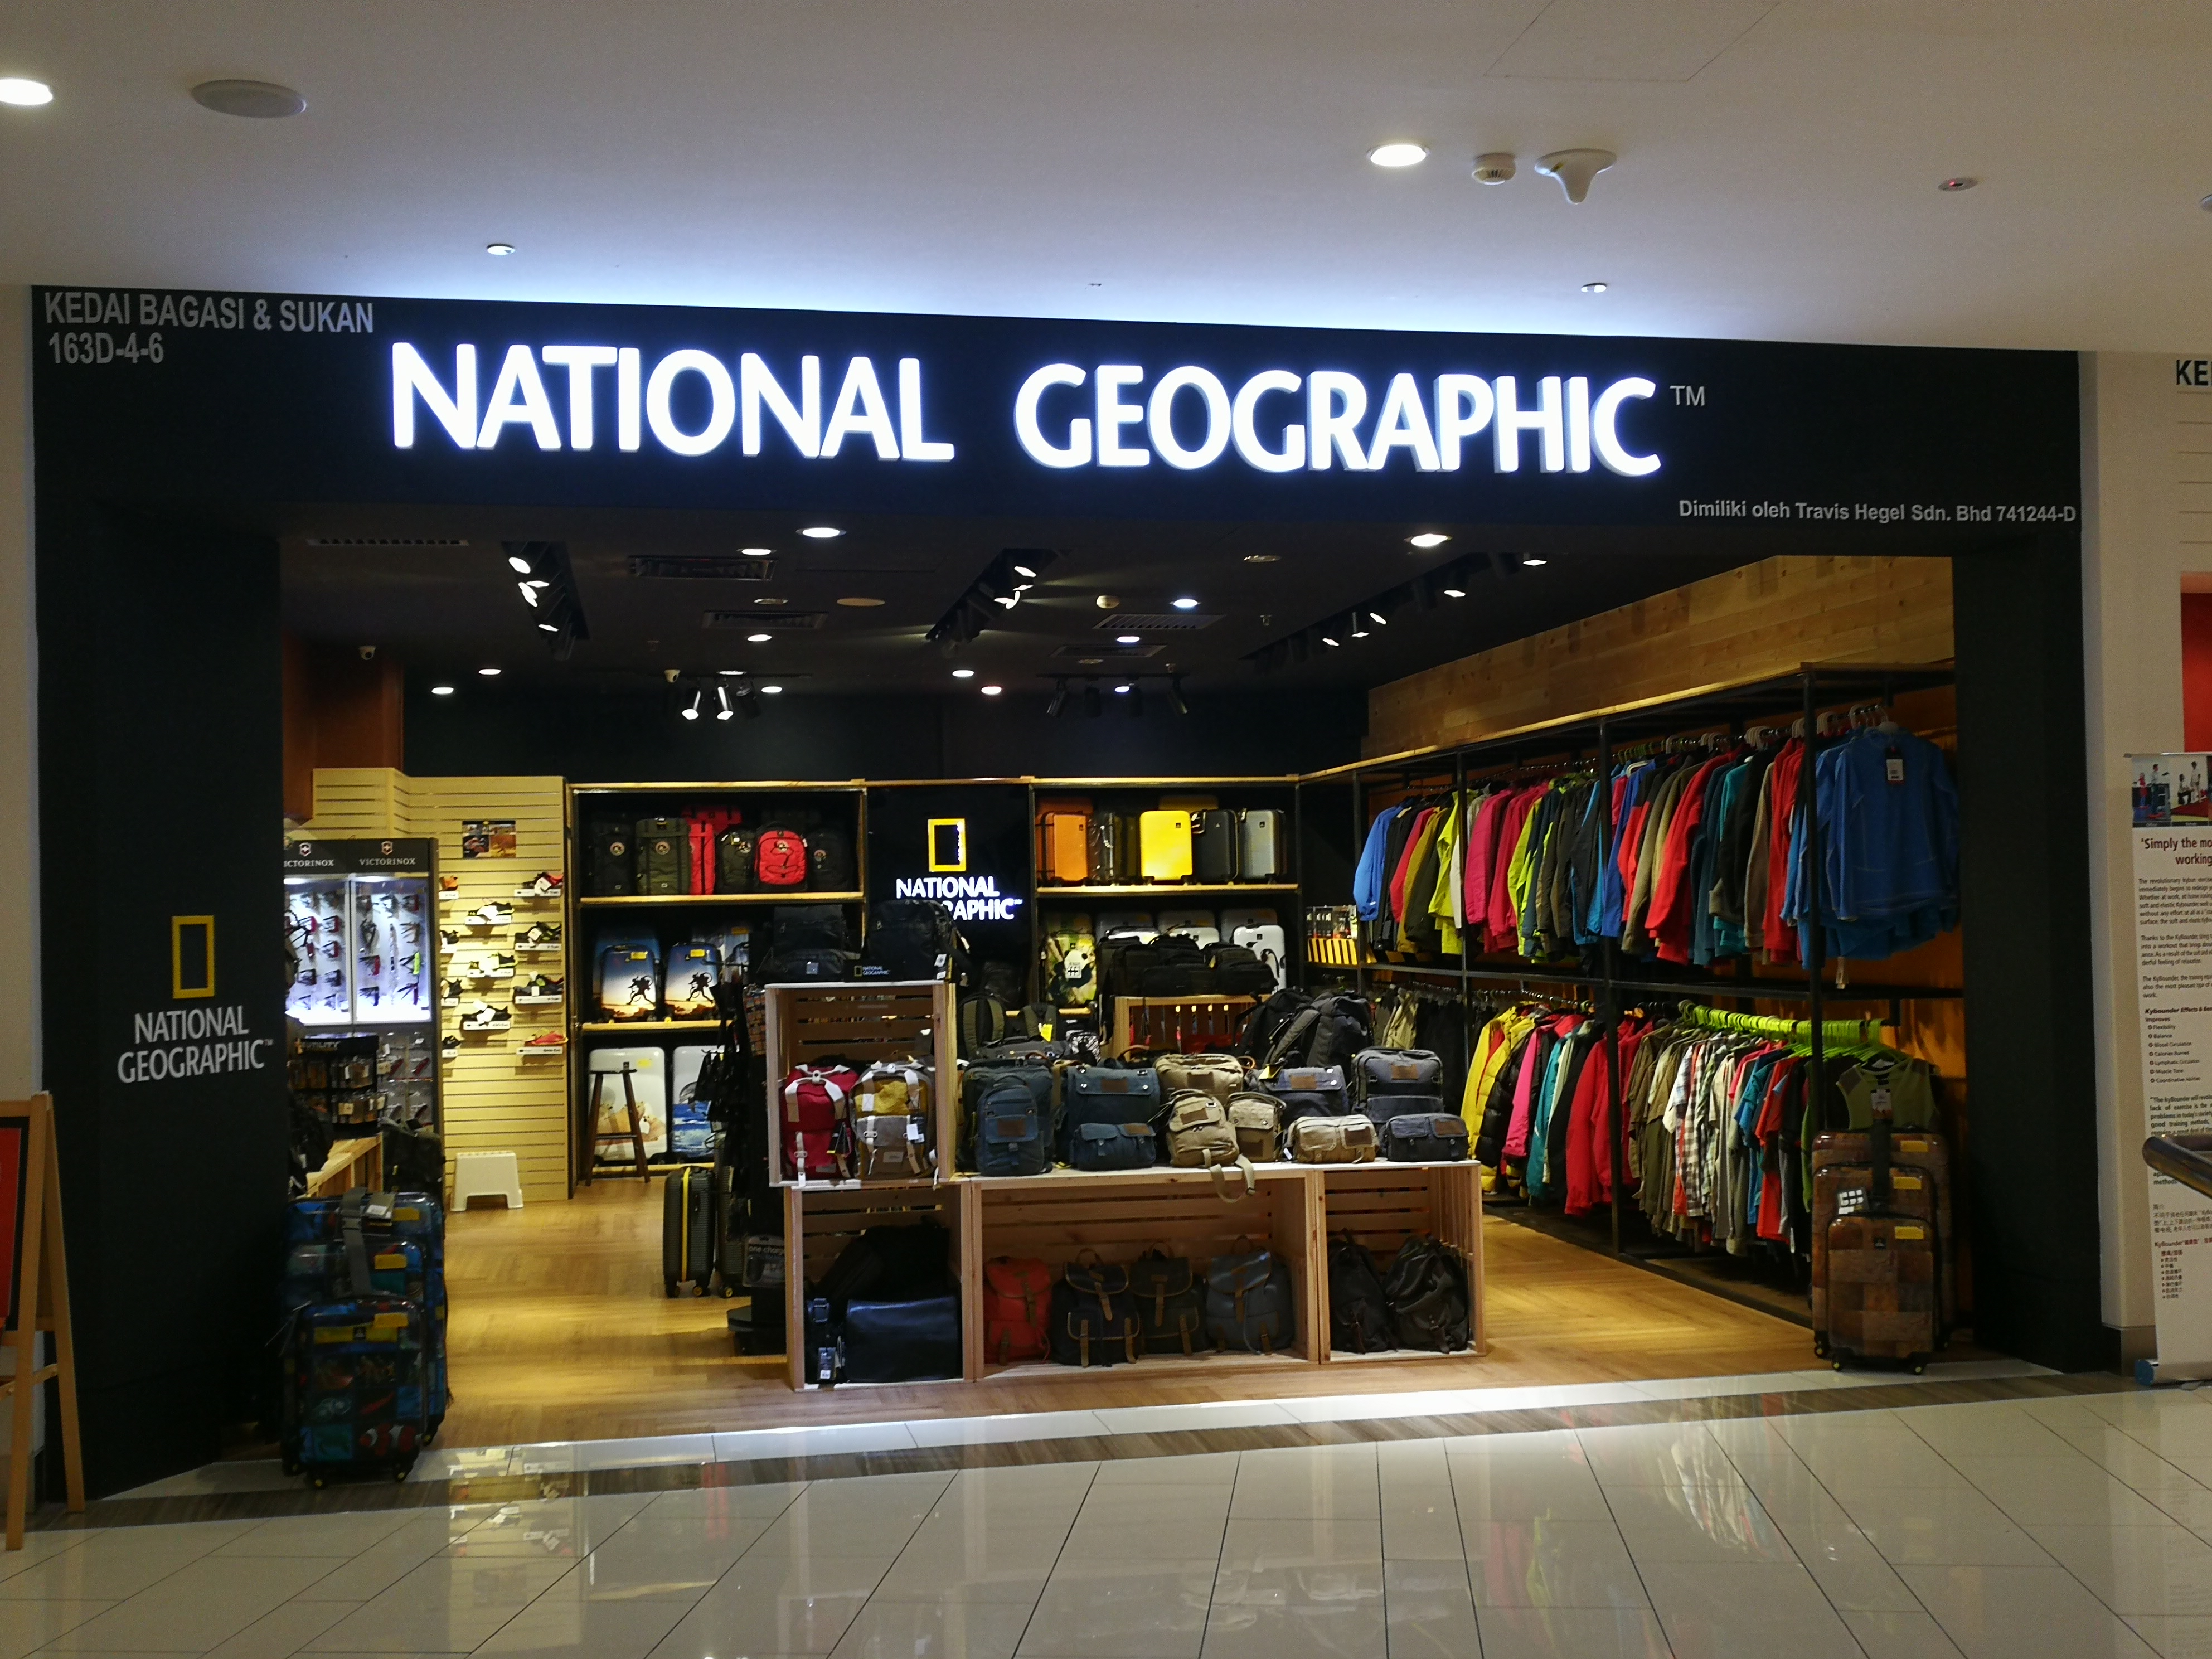 National Geographic Store, Gurney Paragon